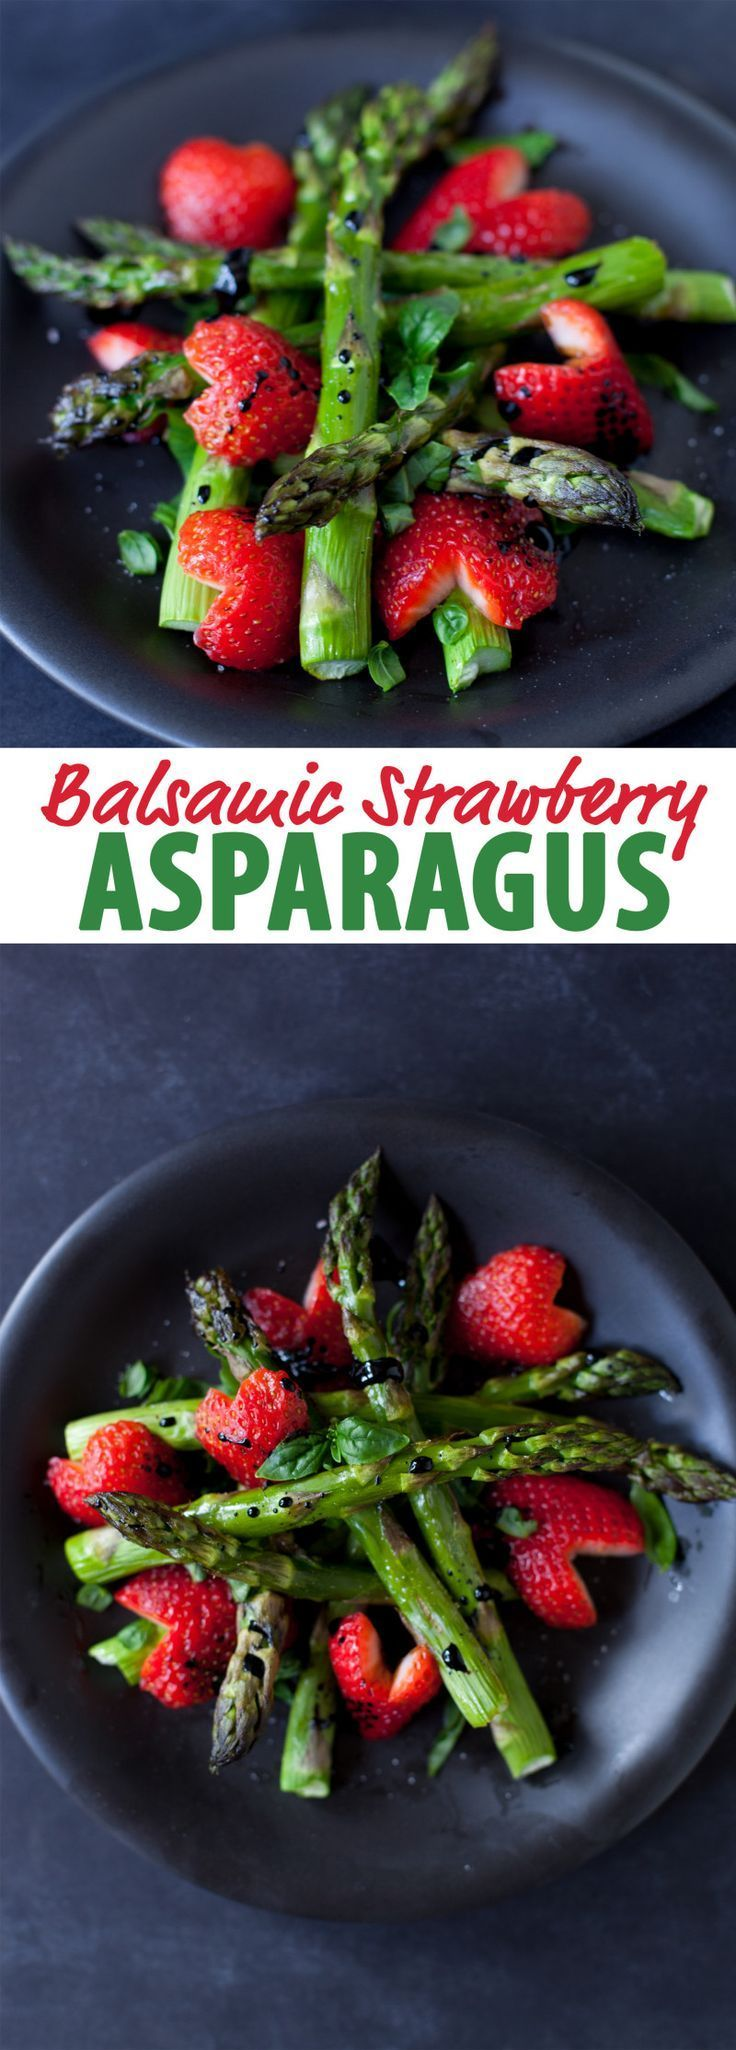 This balsamic strawberry asparagus recipe makes a gorgeous Christmas side dish that's vegan and gluten free. From EatingRichly.com